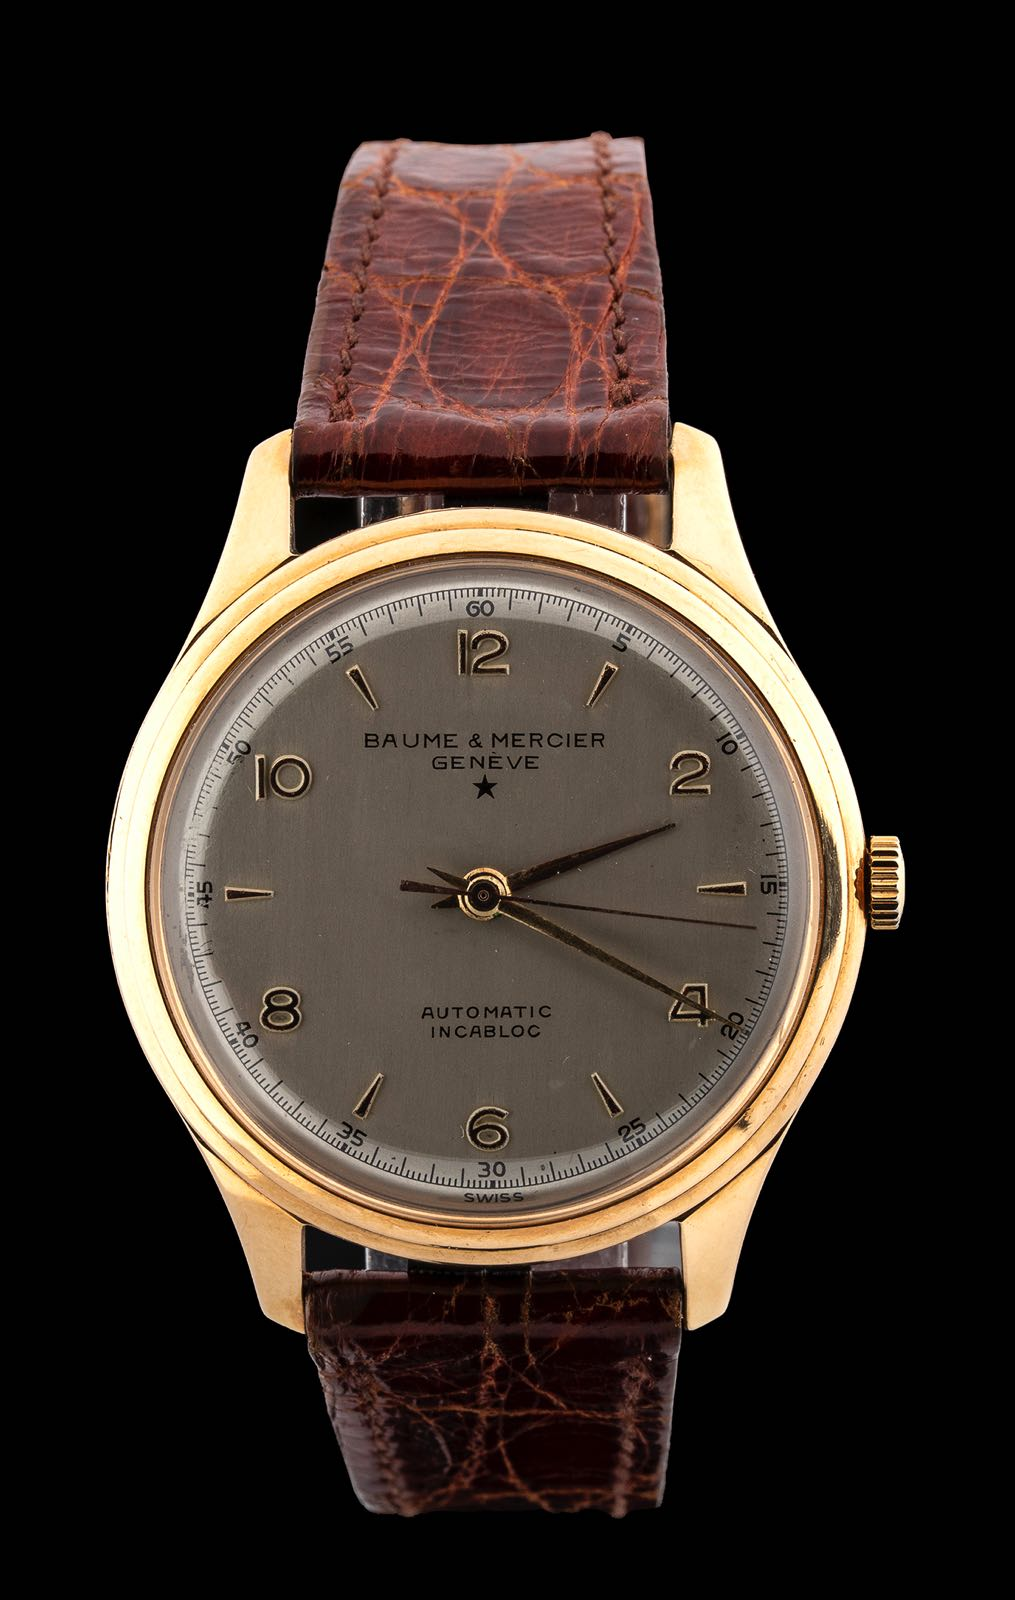 Baume et Mercier, 18 kt gold, Bubble Back Look, 50'